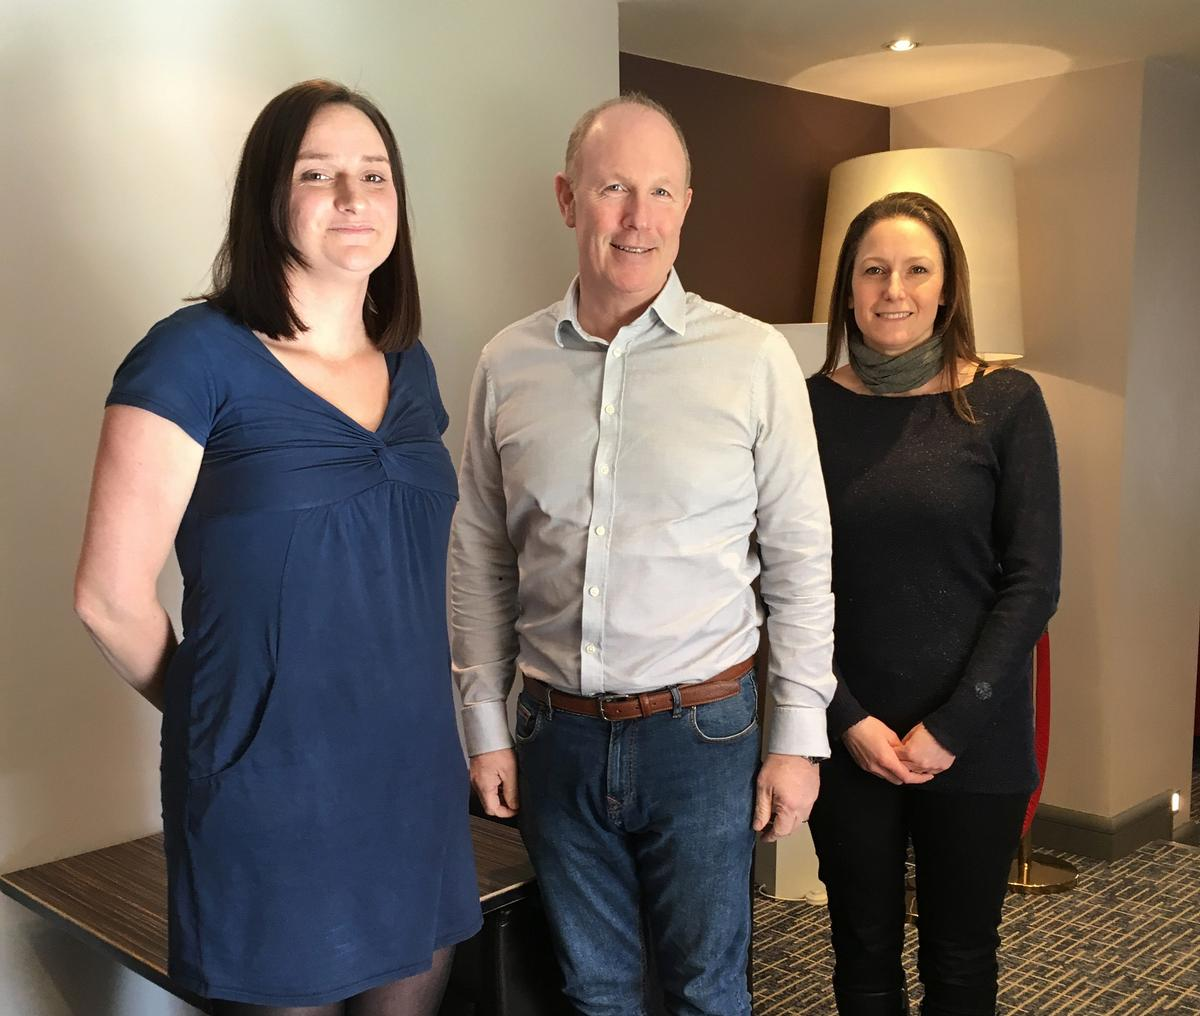 Sarah Hitchcock (left), Andy Loughray (middle) and Janette Rose (right) will form part of Dyaco UK's top team / Dyaco UK